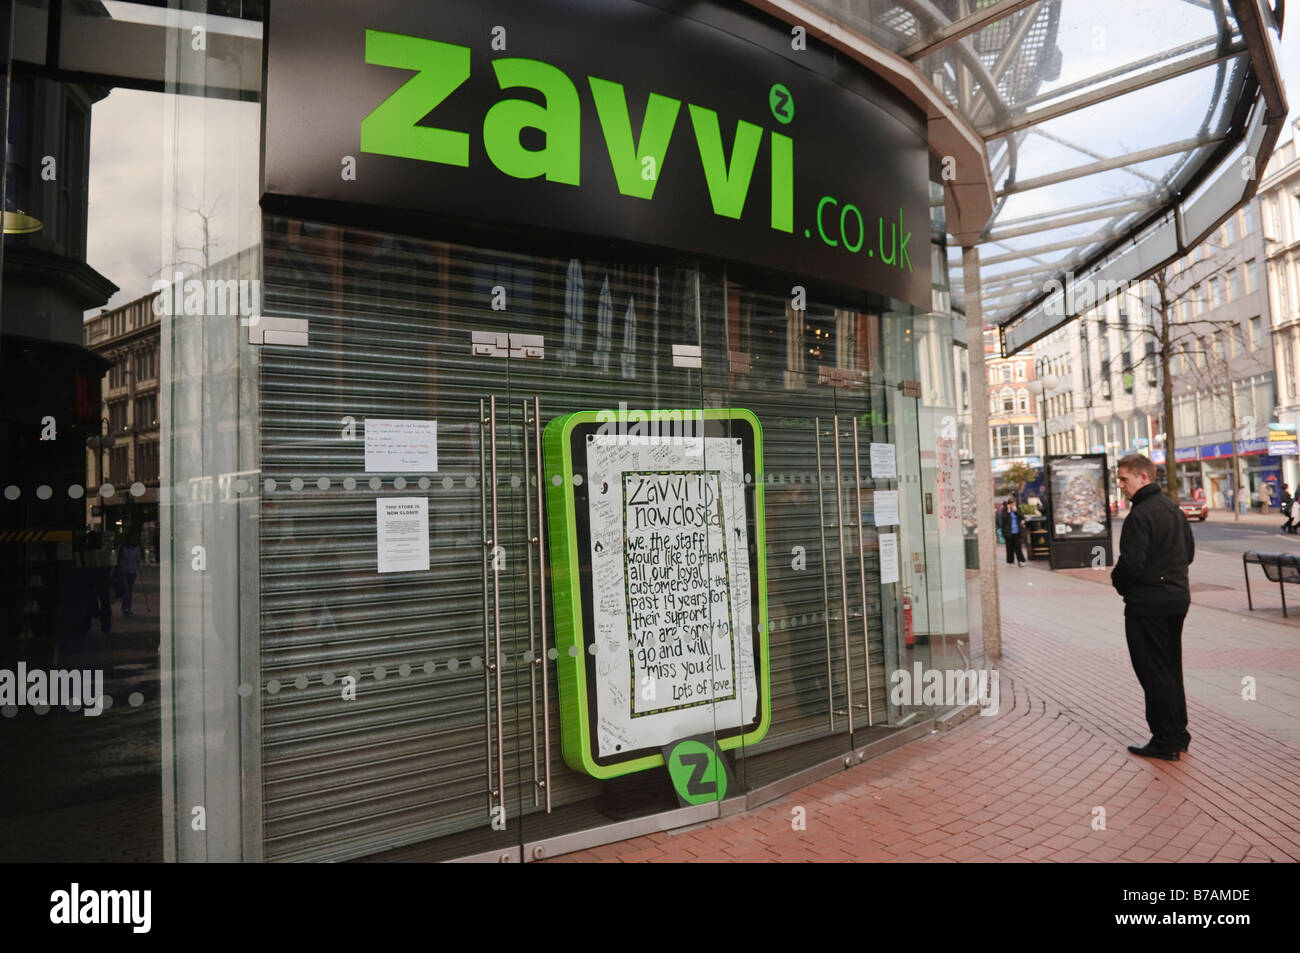 Customer reads closure notices at front door or Zavvi retail store Stock Photo 21748538 - Alamy & Customer reads closure notices at front door or Zavvi retail store ...